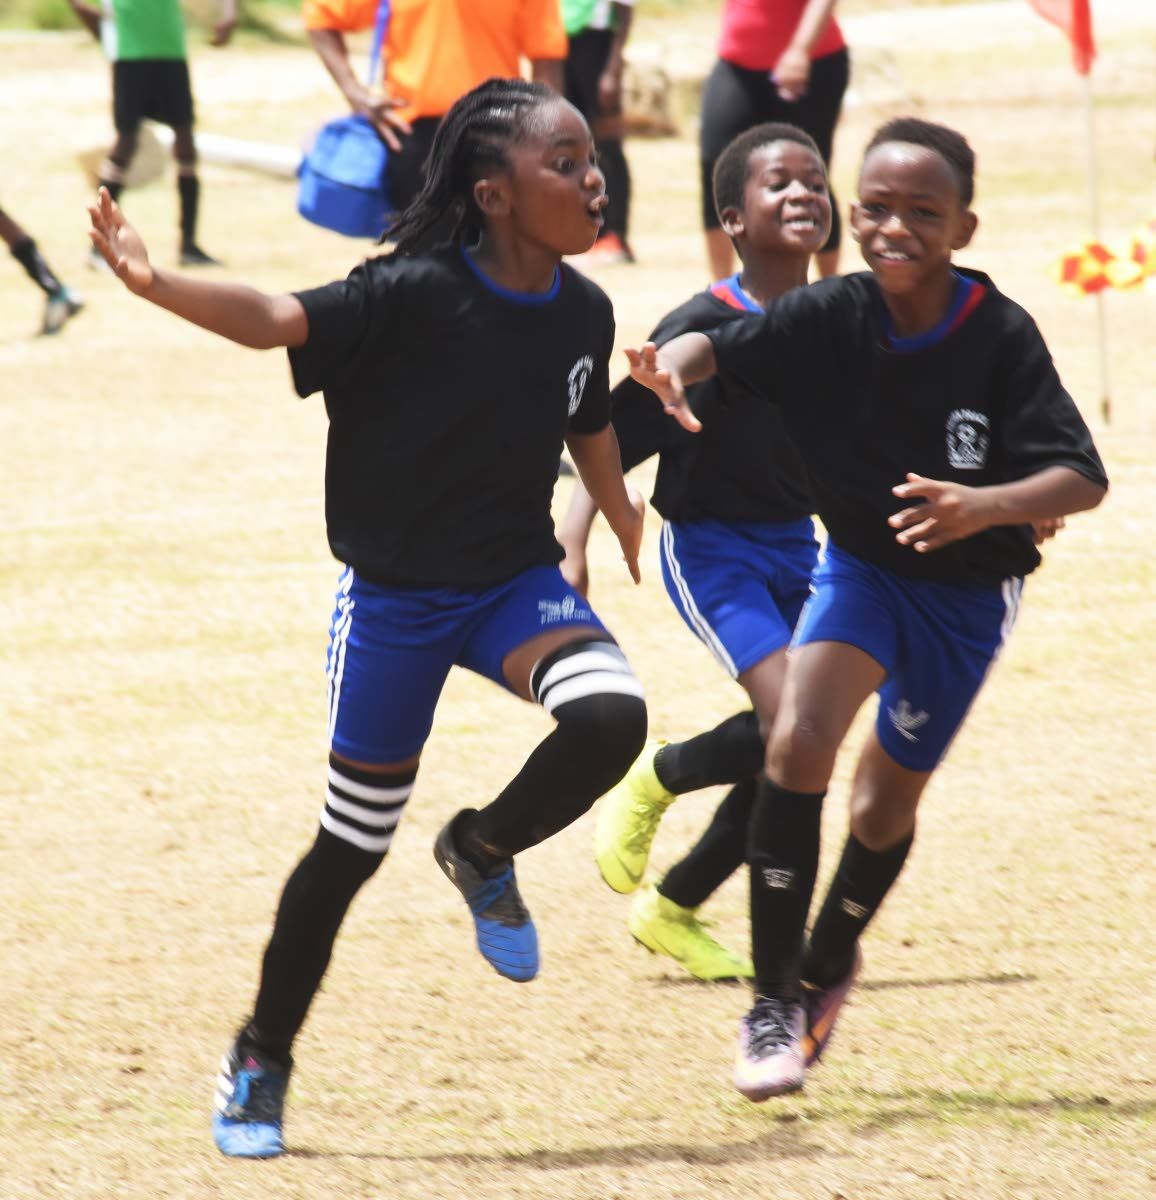 Merimba Melesse of Crown Trace United celebrates after scoring a goal during an  Under-11 match.